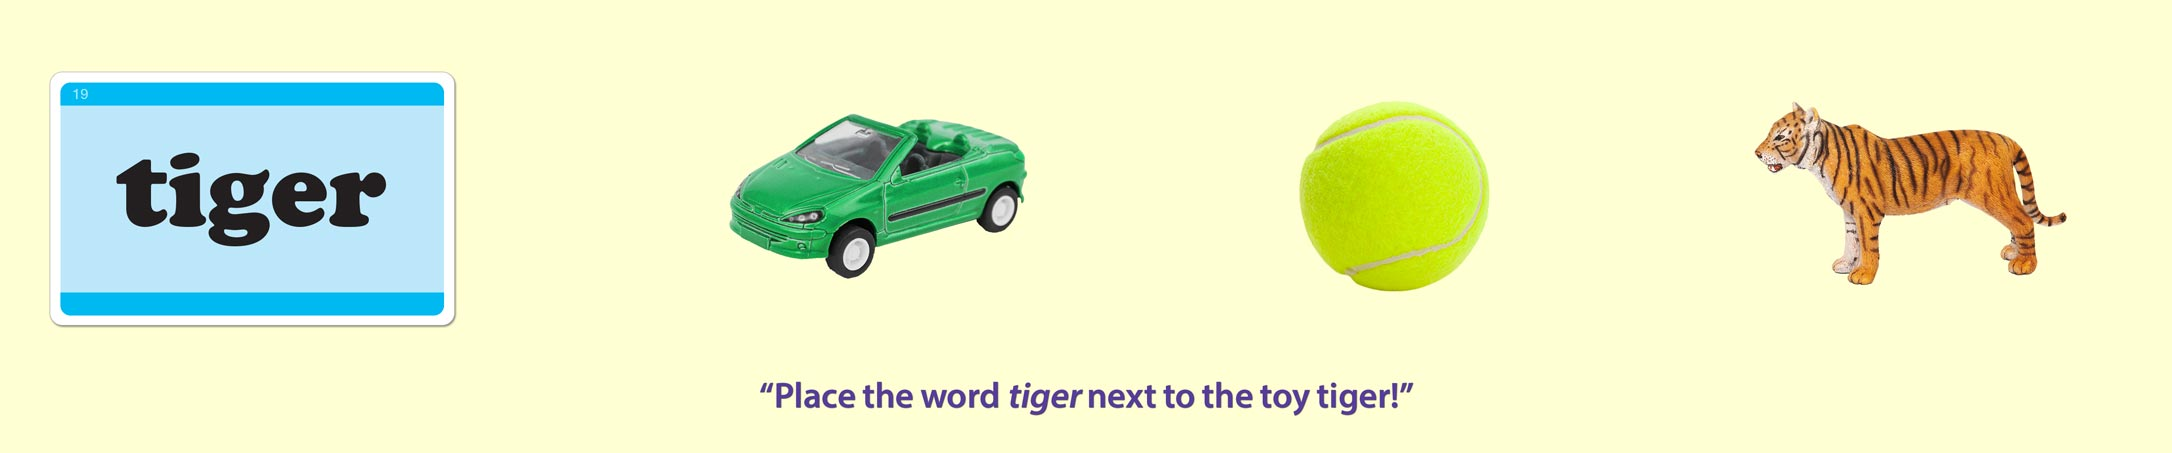 Animal and Object Game: Match a Word to the Correct Object. Place the word tiger next to the toy tiger!